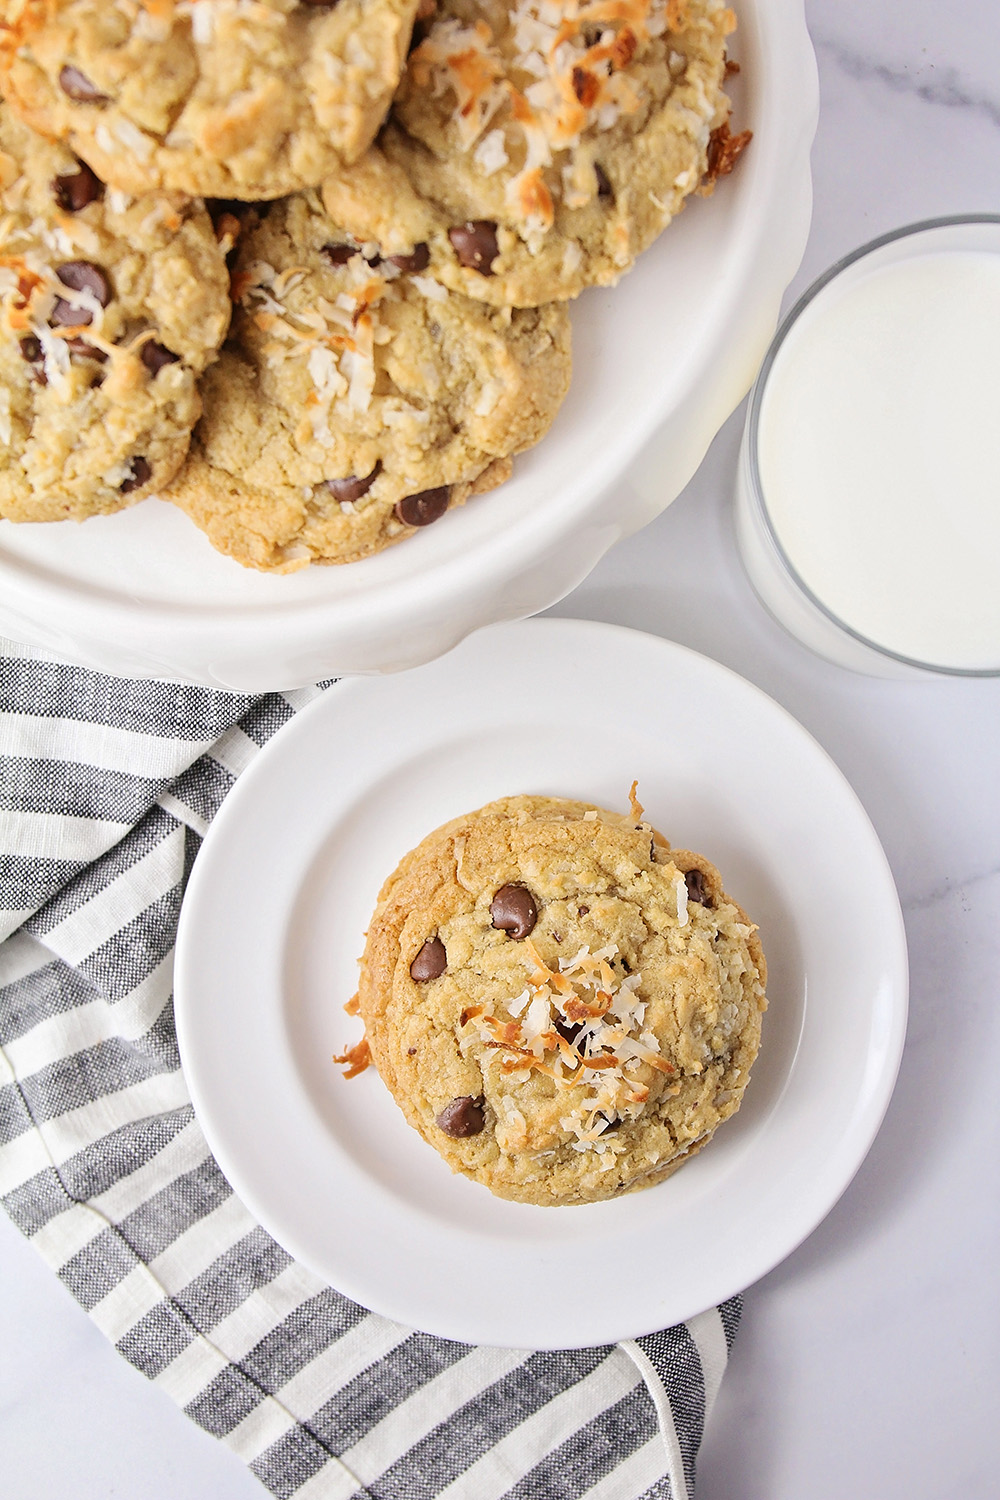 These chewy coconut chocolate chip cookies taste heavenly, and are loaded with gooey chocolate and sweet coconut!